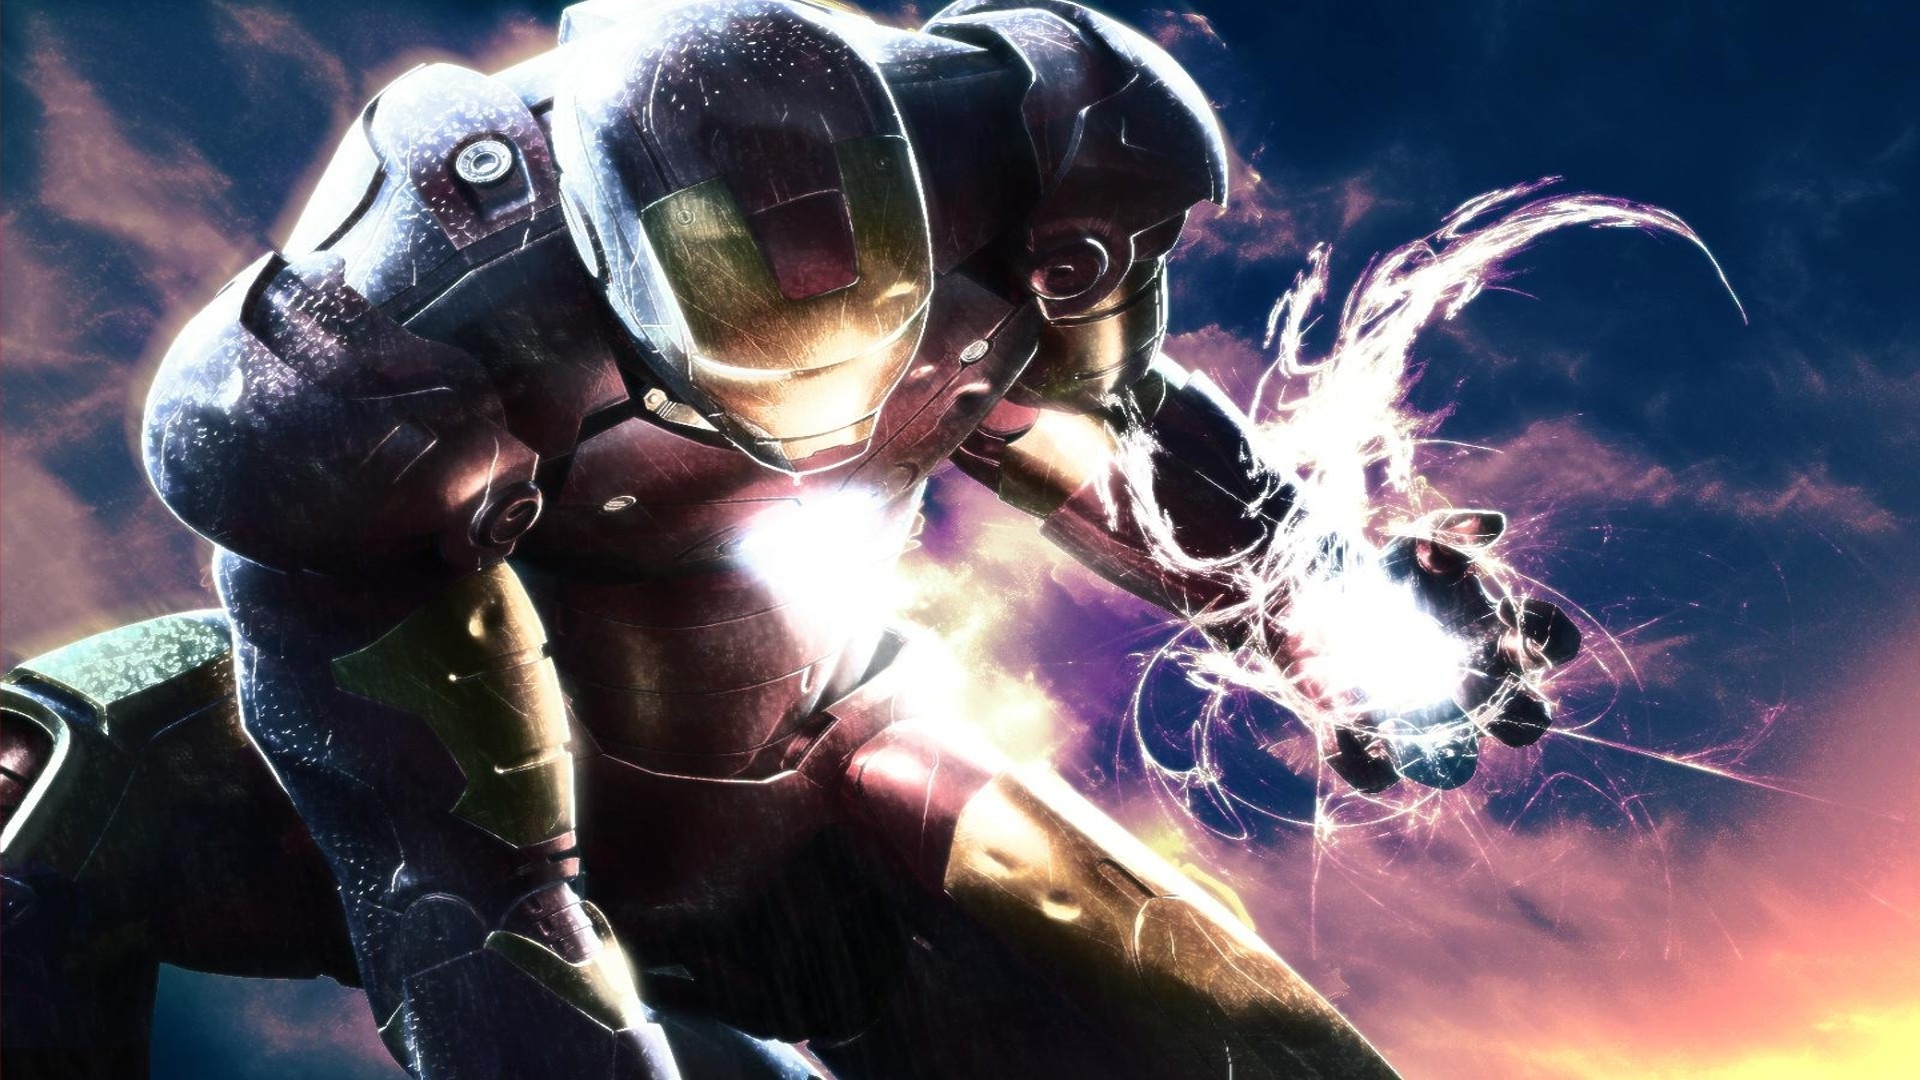 iron man 3 wallpaper 1920x1080 - wallpapersafari